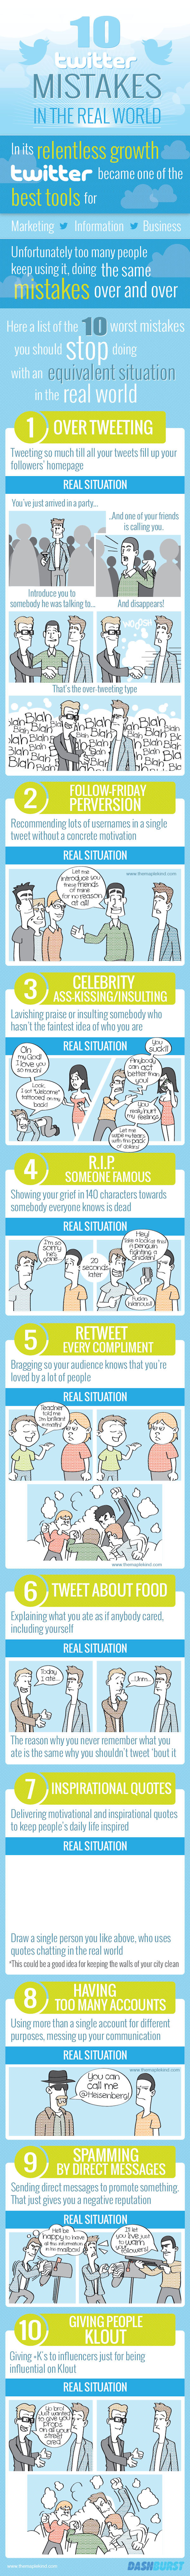 10 Twitter Mistakes You Also Make in Real Life